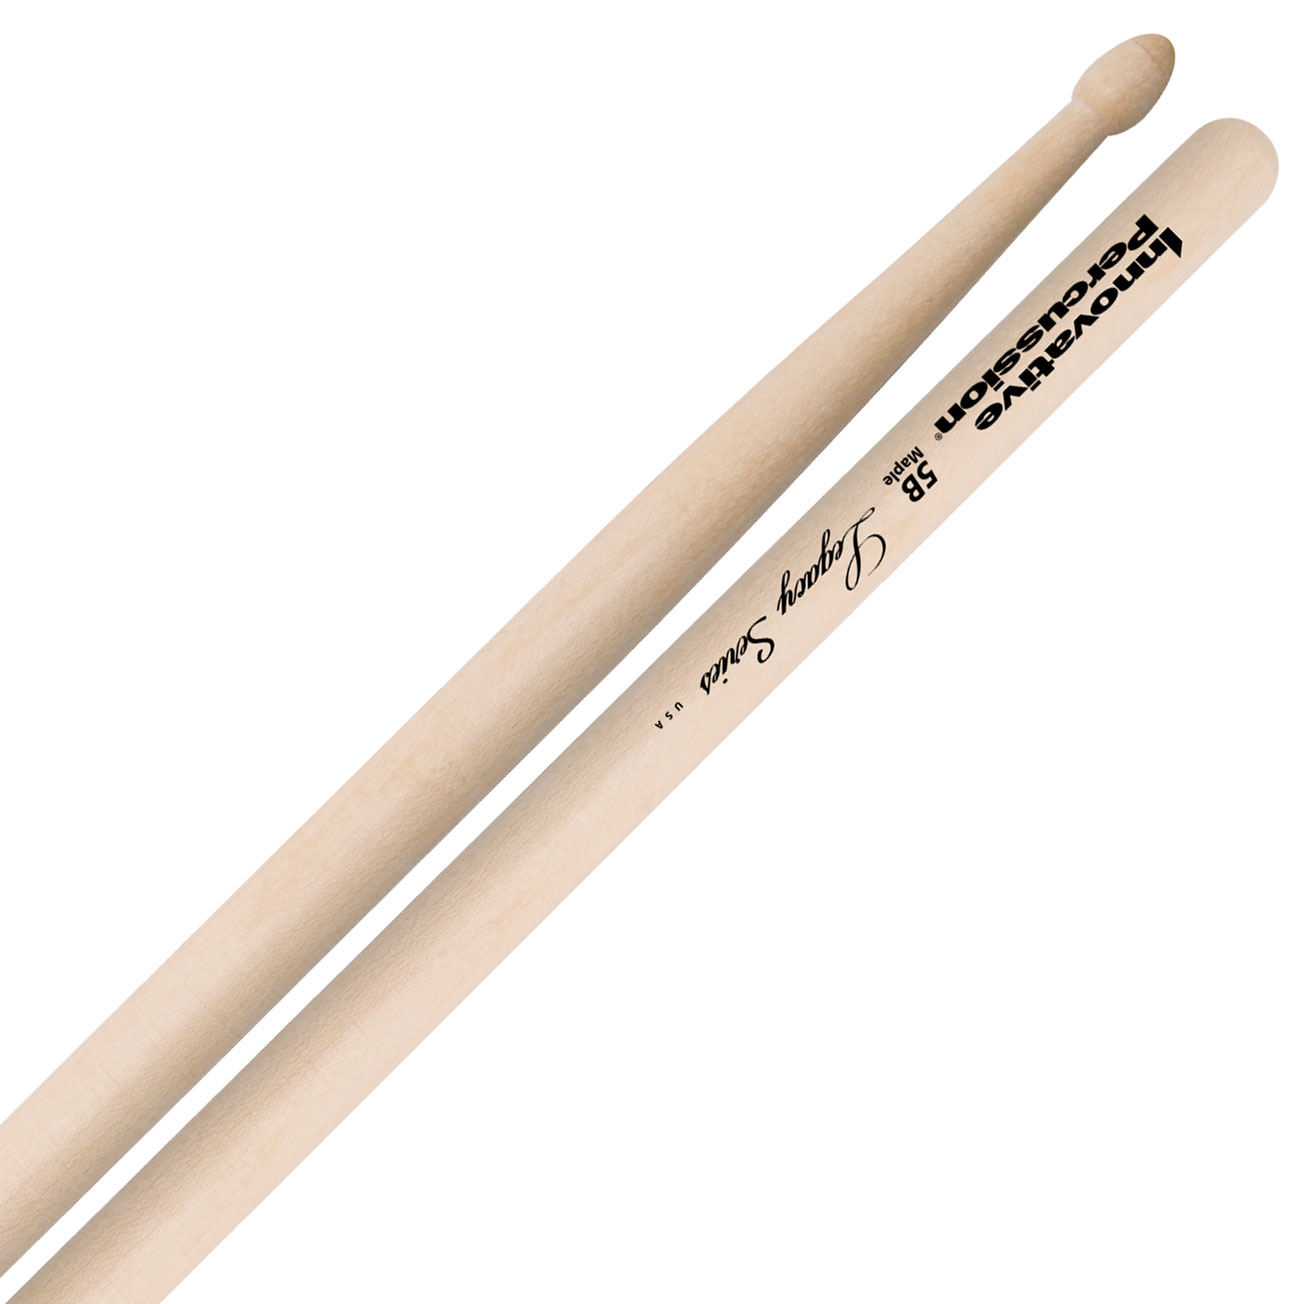 Innovative Percussion Legacy Series Maple 5B Wood Tip Drumsticks